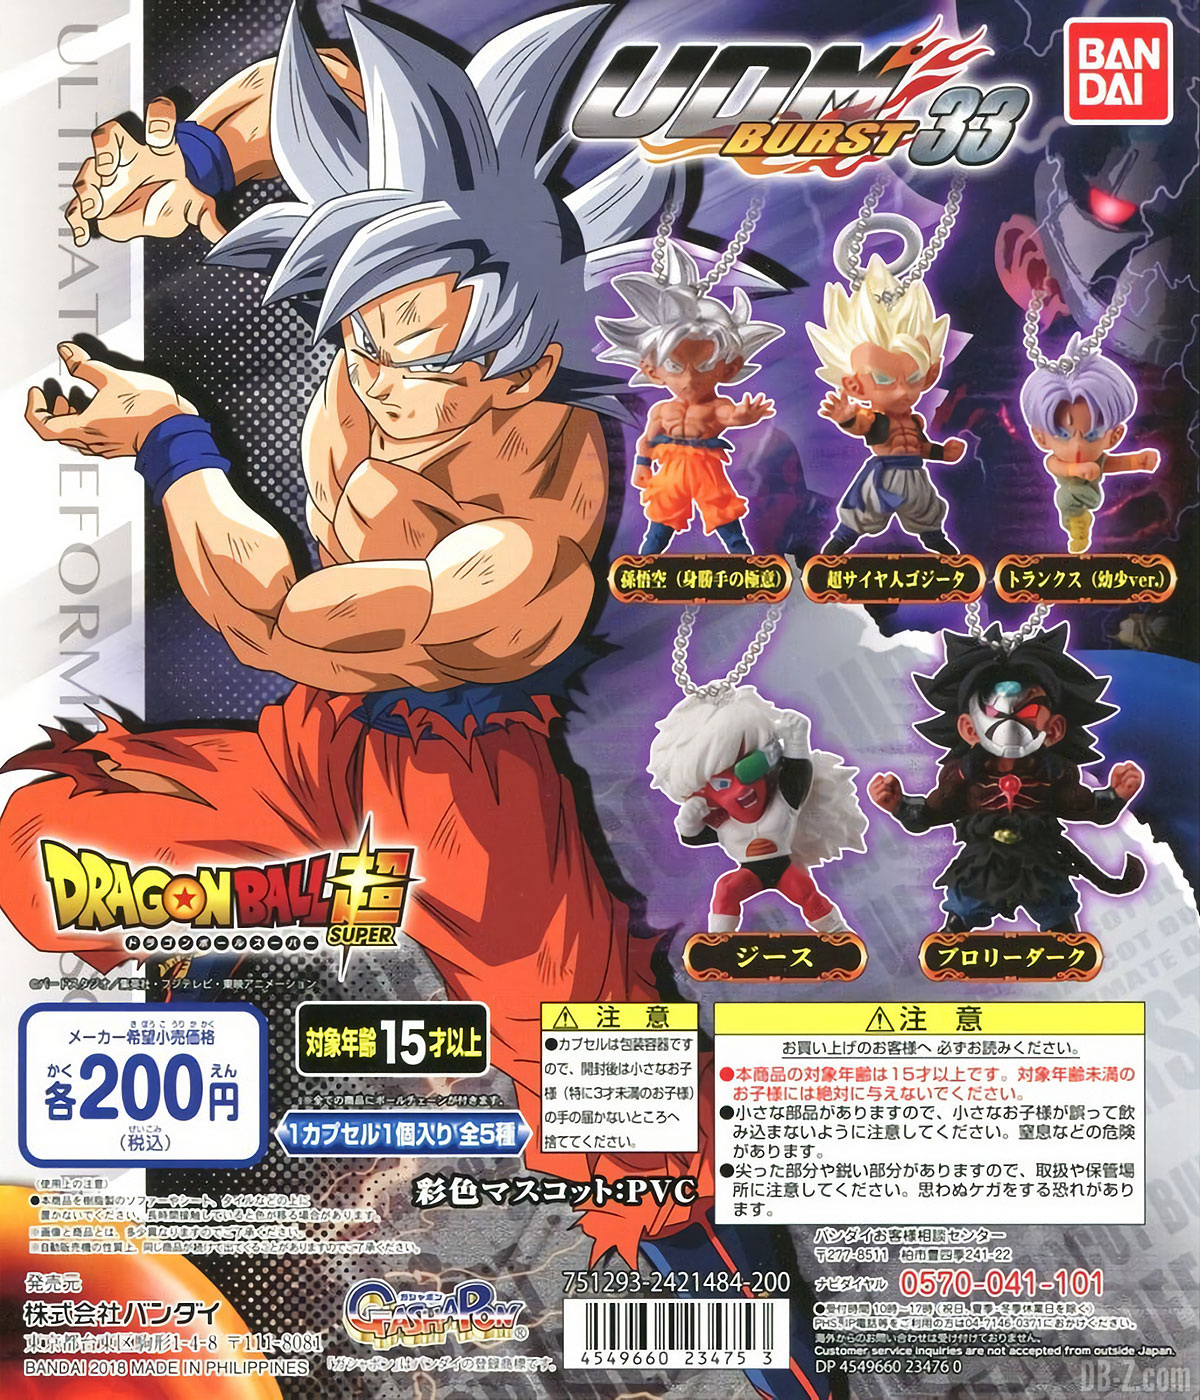 UDM Burst 33 Dragon Ball Super